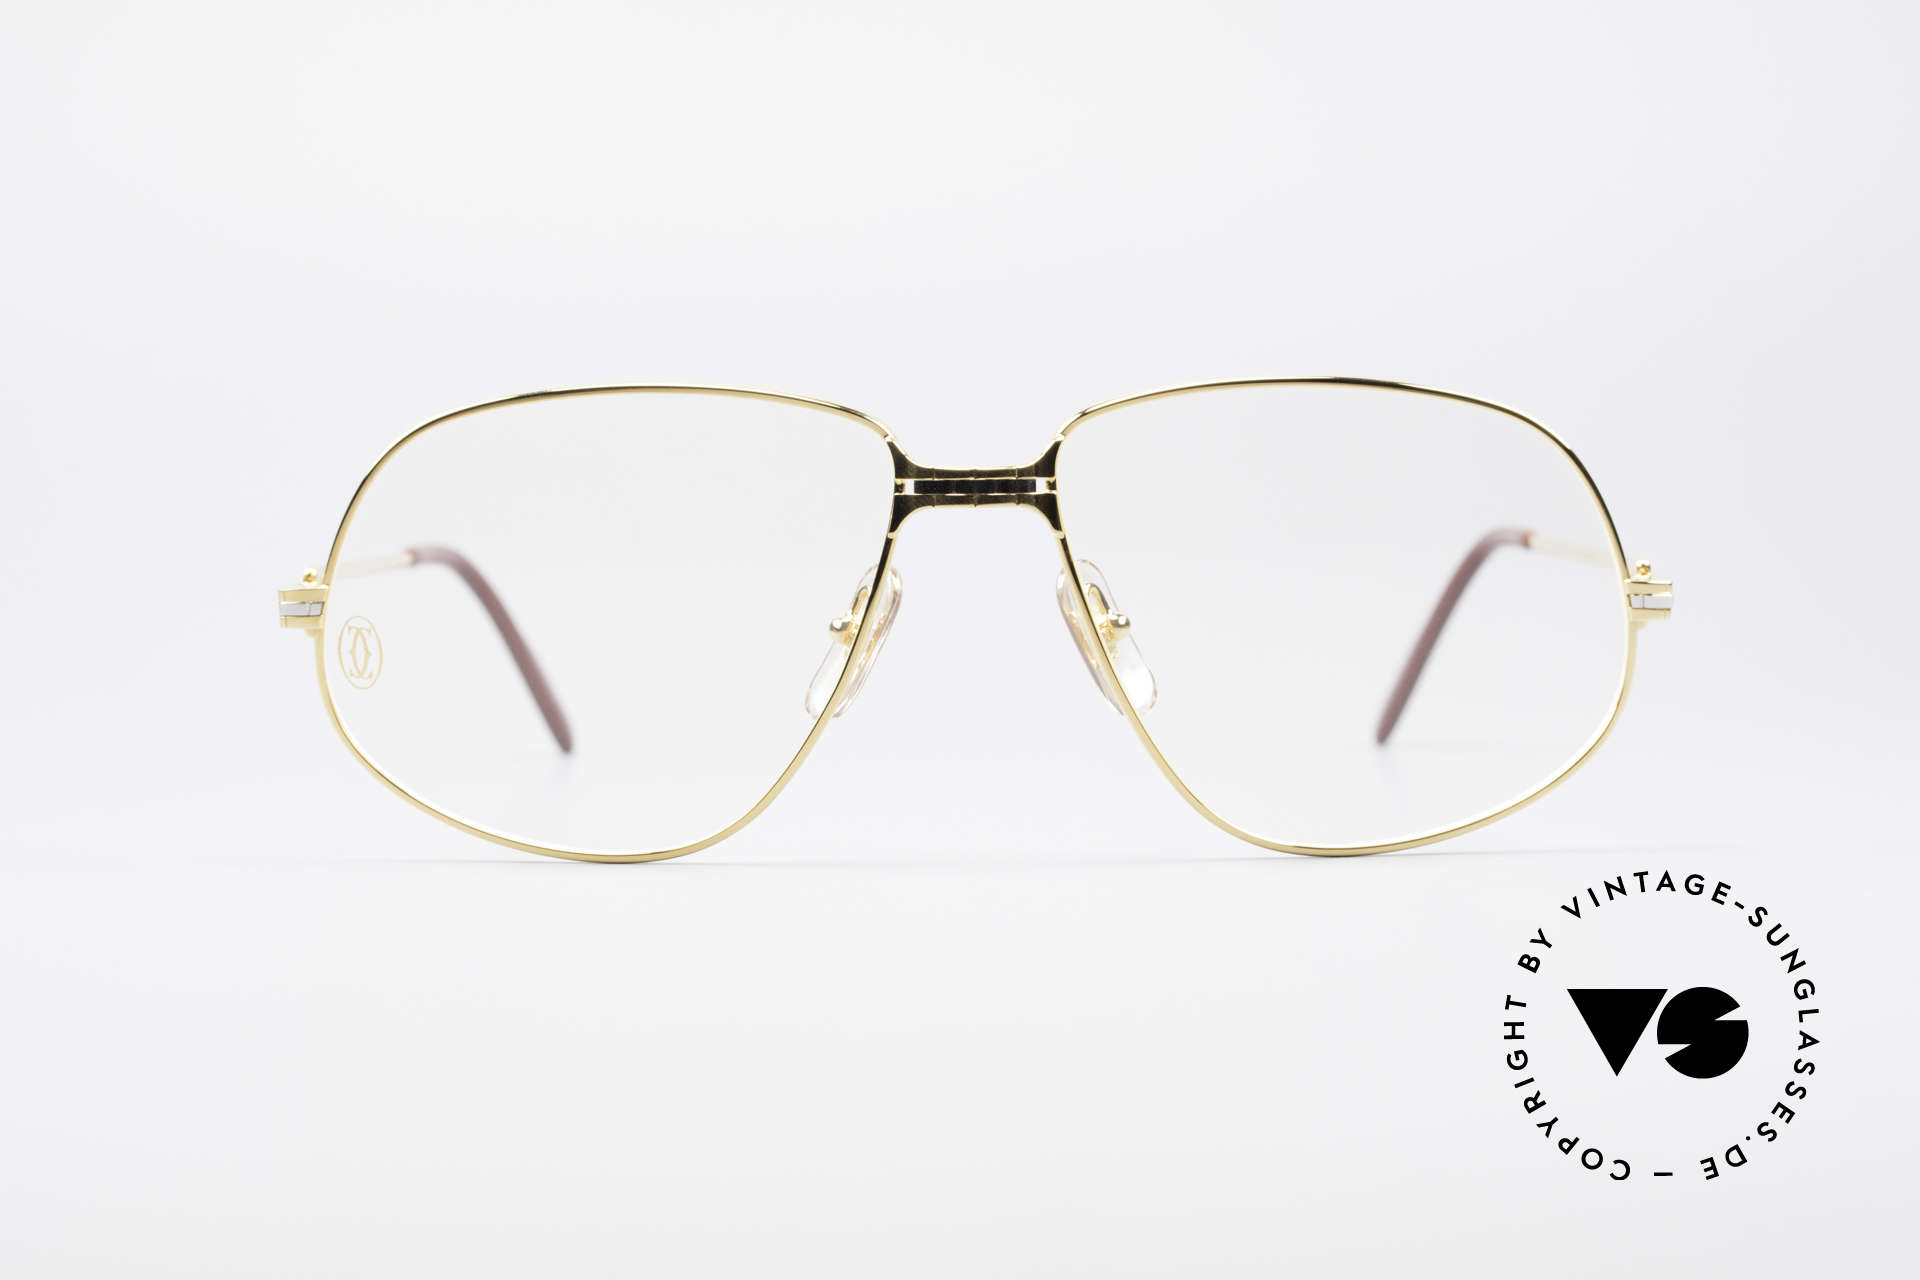 a2ca27e8311 You may also like these glasses. Cartier Orsay Luxury Vintage Eyeglasses  Details